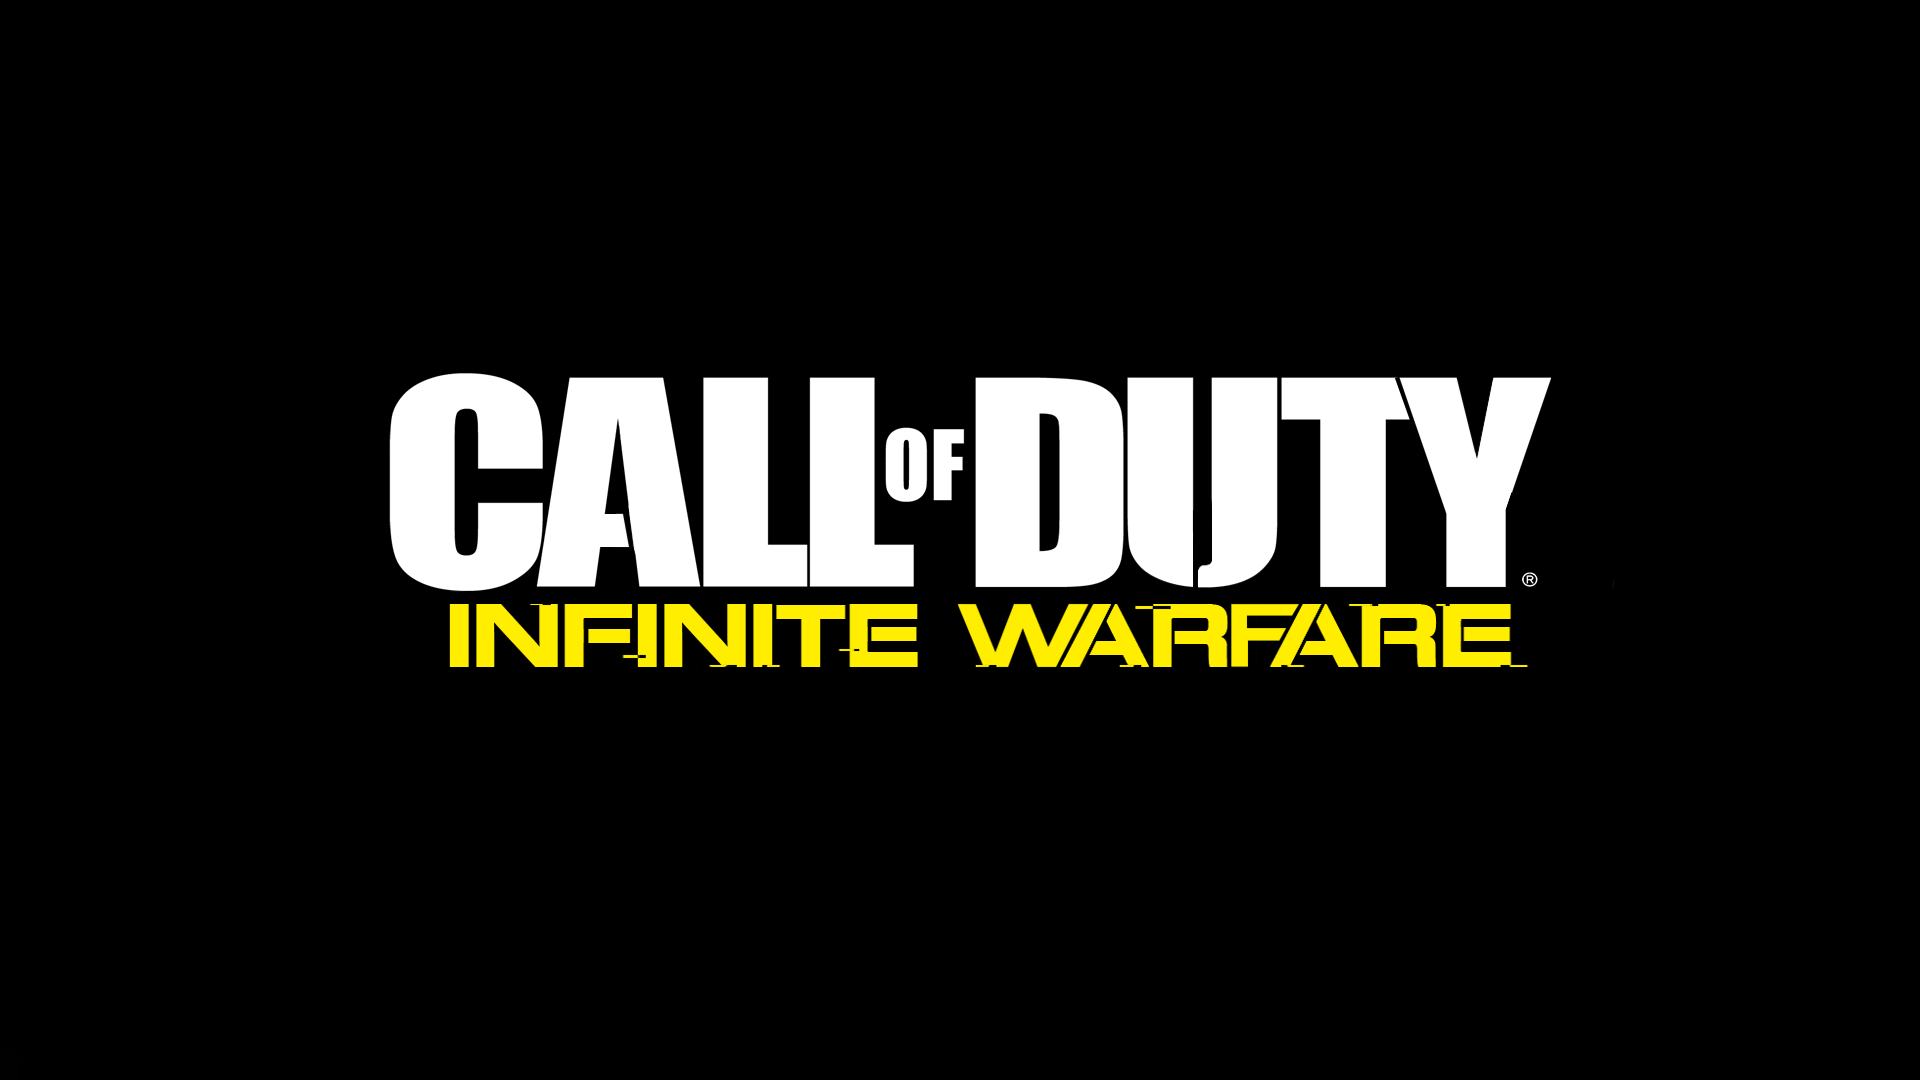 40 Call of Duty Infinite Warfare HD Wallpapers Background Images 1920x1080